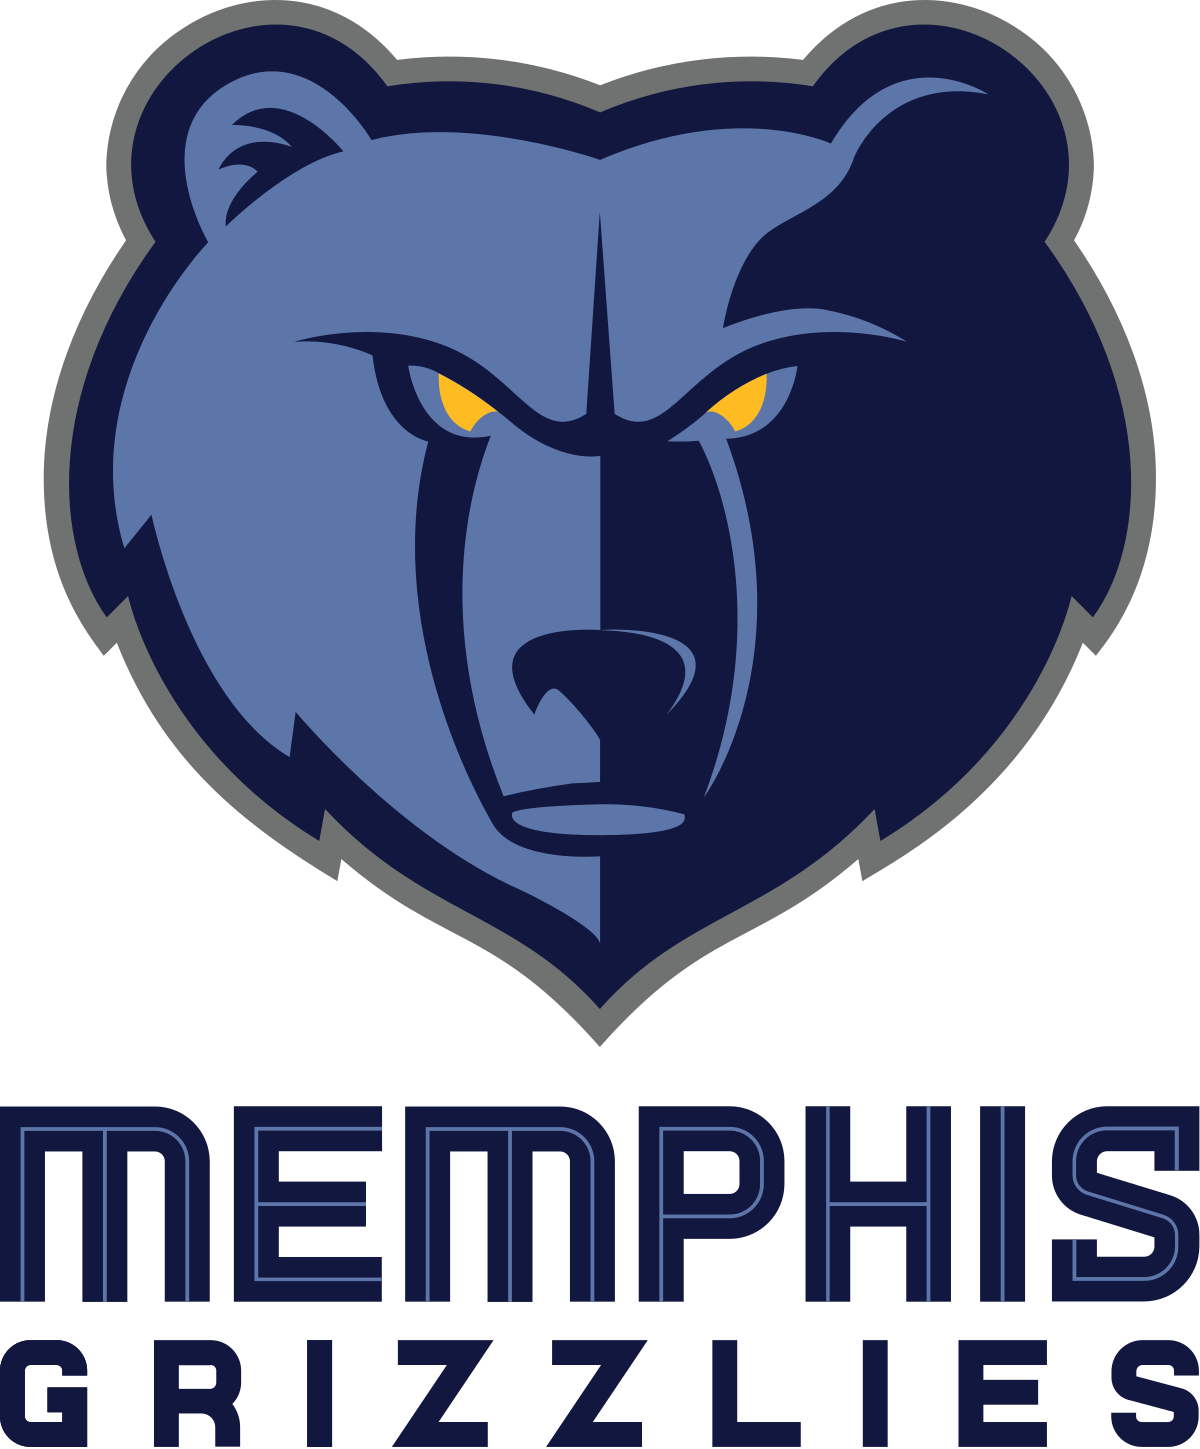 Grizzly drawing memphis grizzlies. Wikipedia